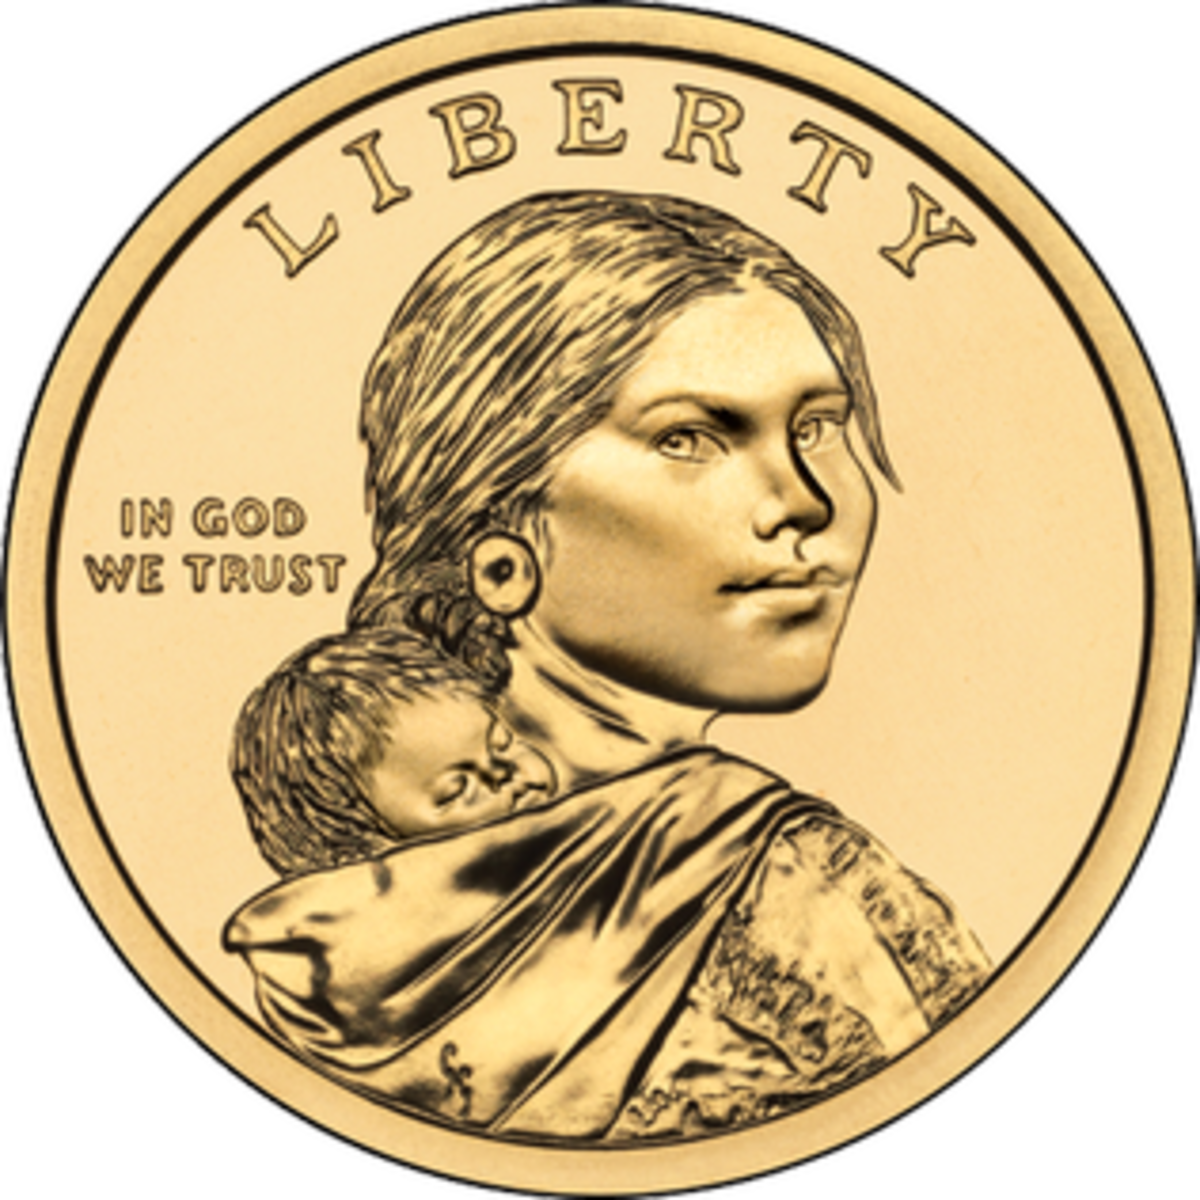 U.S. Sacagawea Dollar coin. Issued from 2000 to 2008.